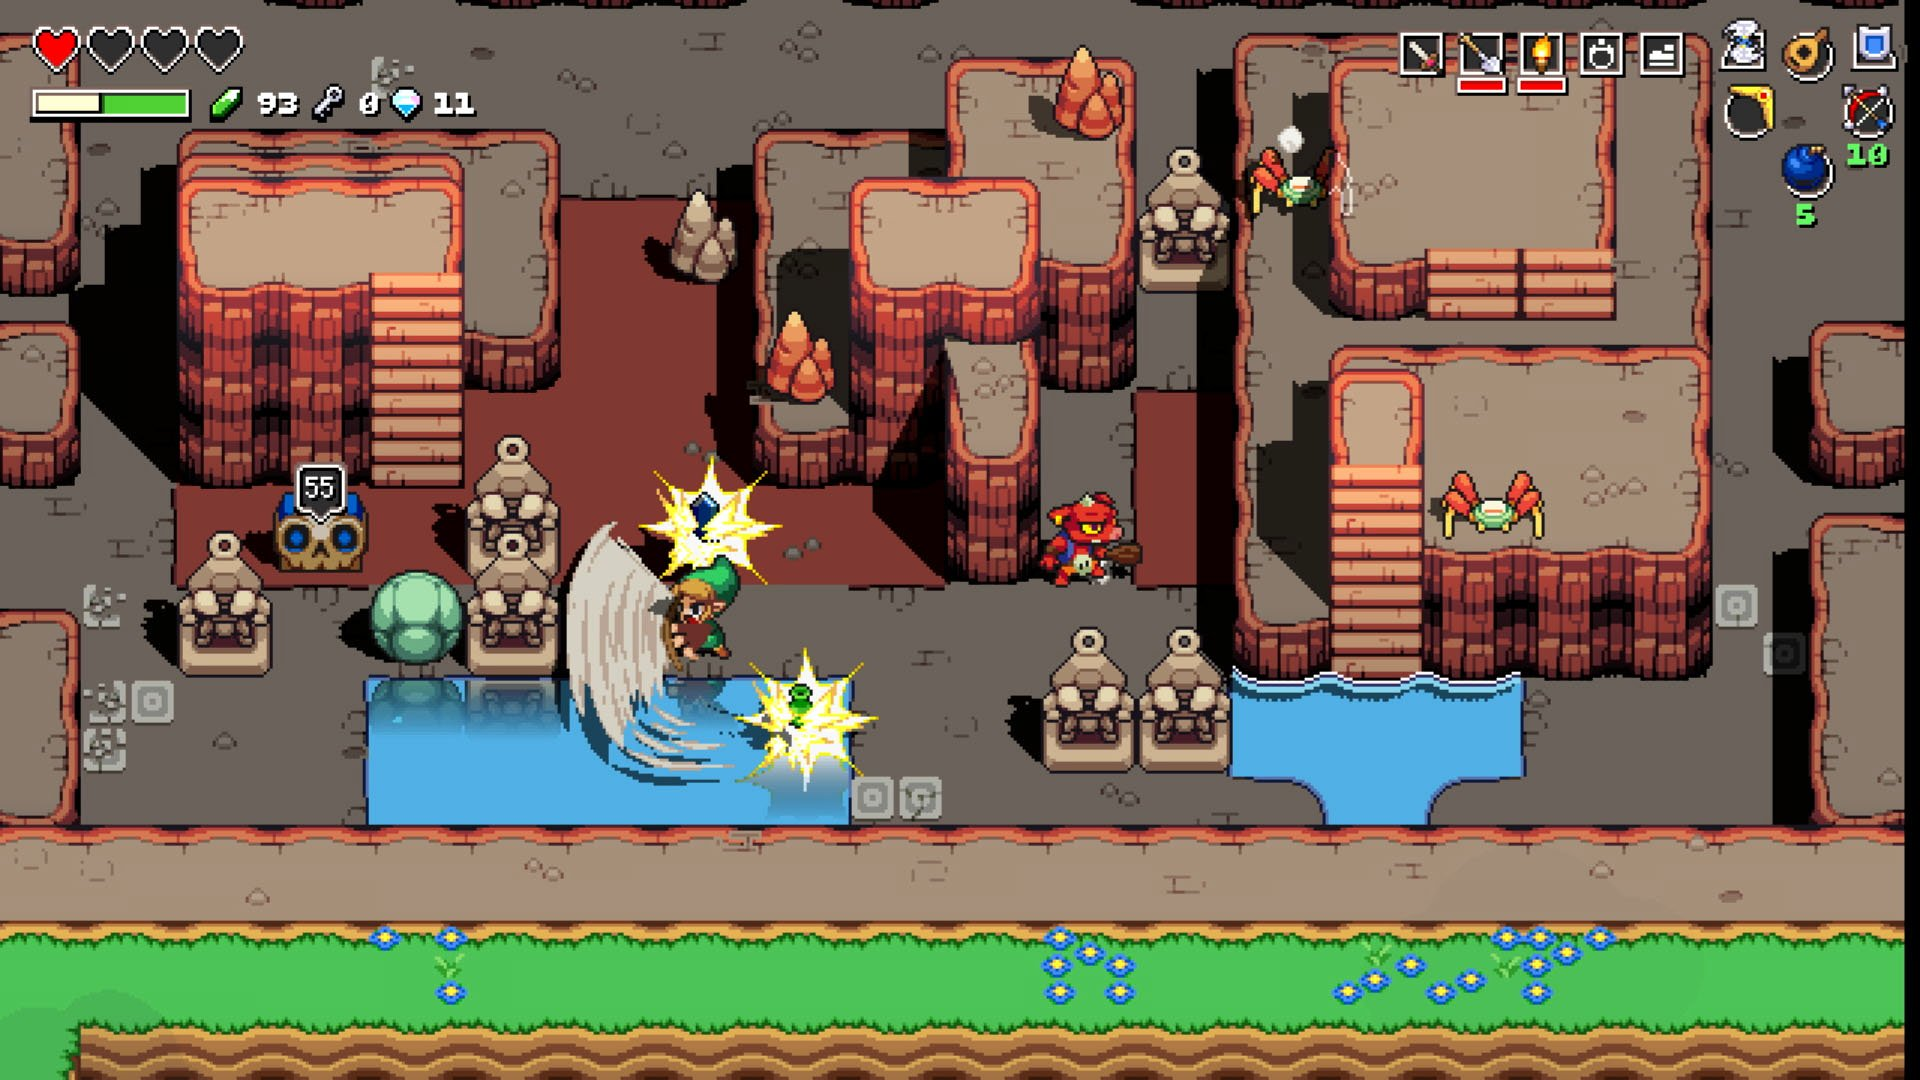 How to get the Quiver in Cadence of Hyrule | Shacknews